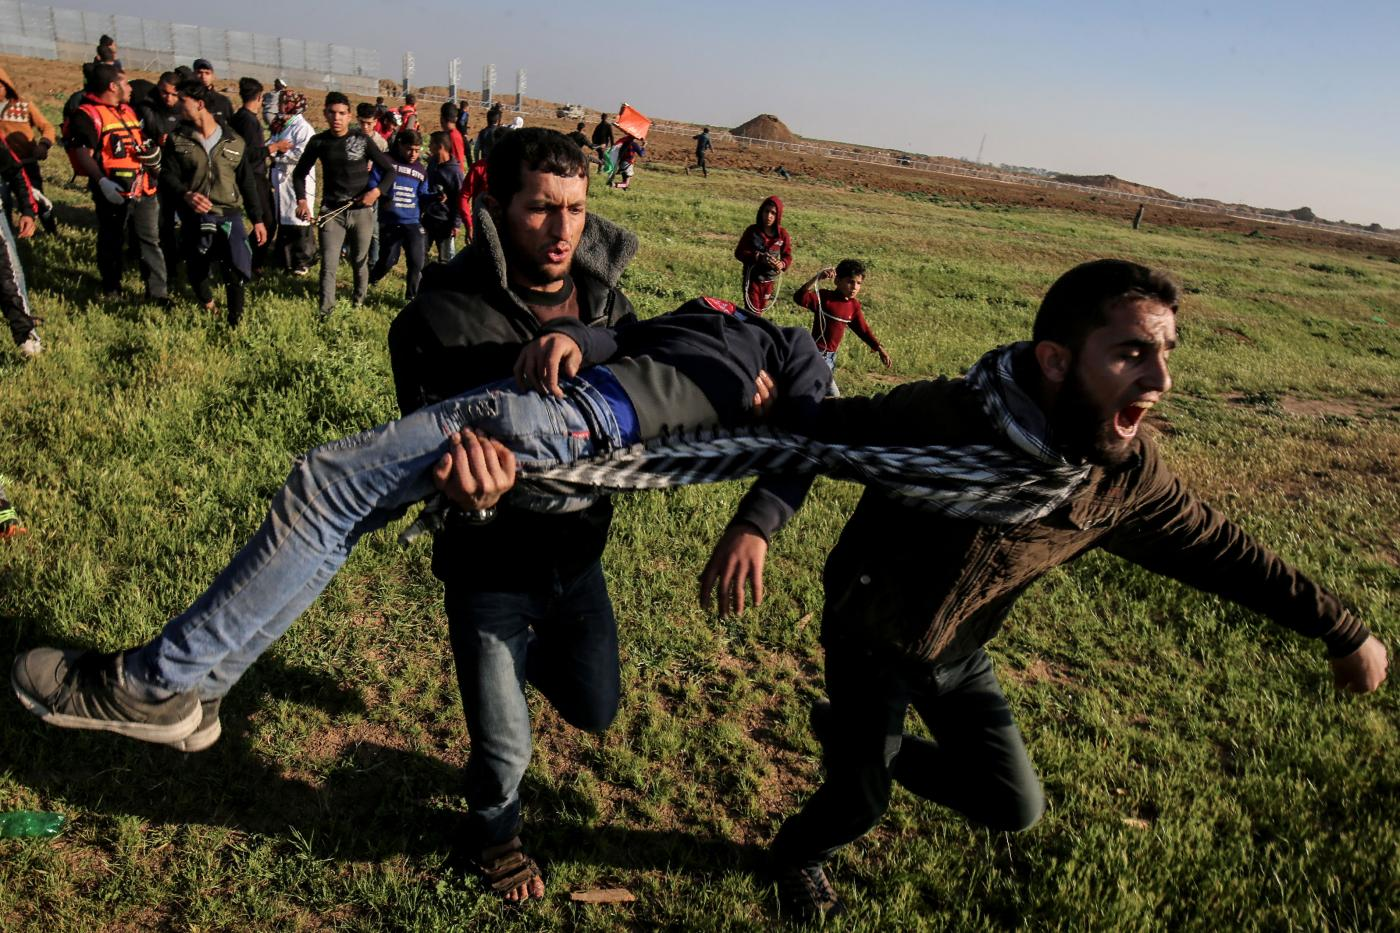 Two Palestinians killed by Israeli fire in Gaza border clashes